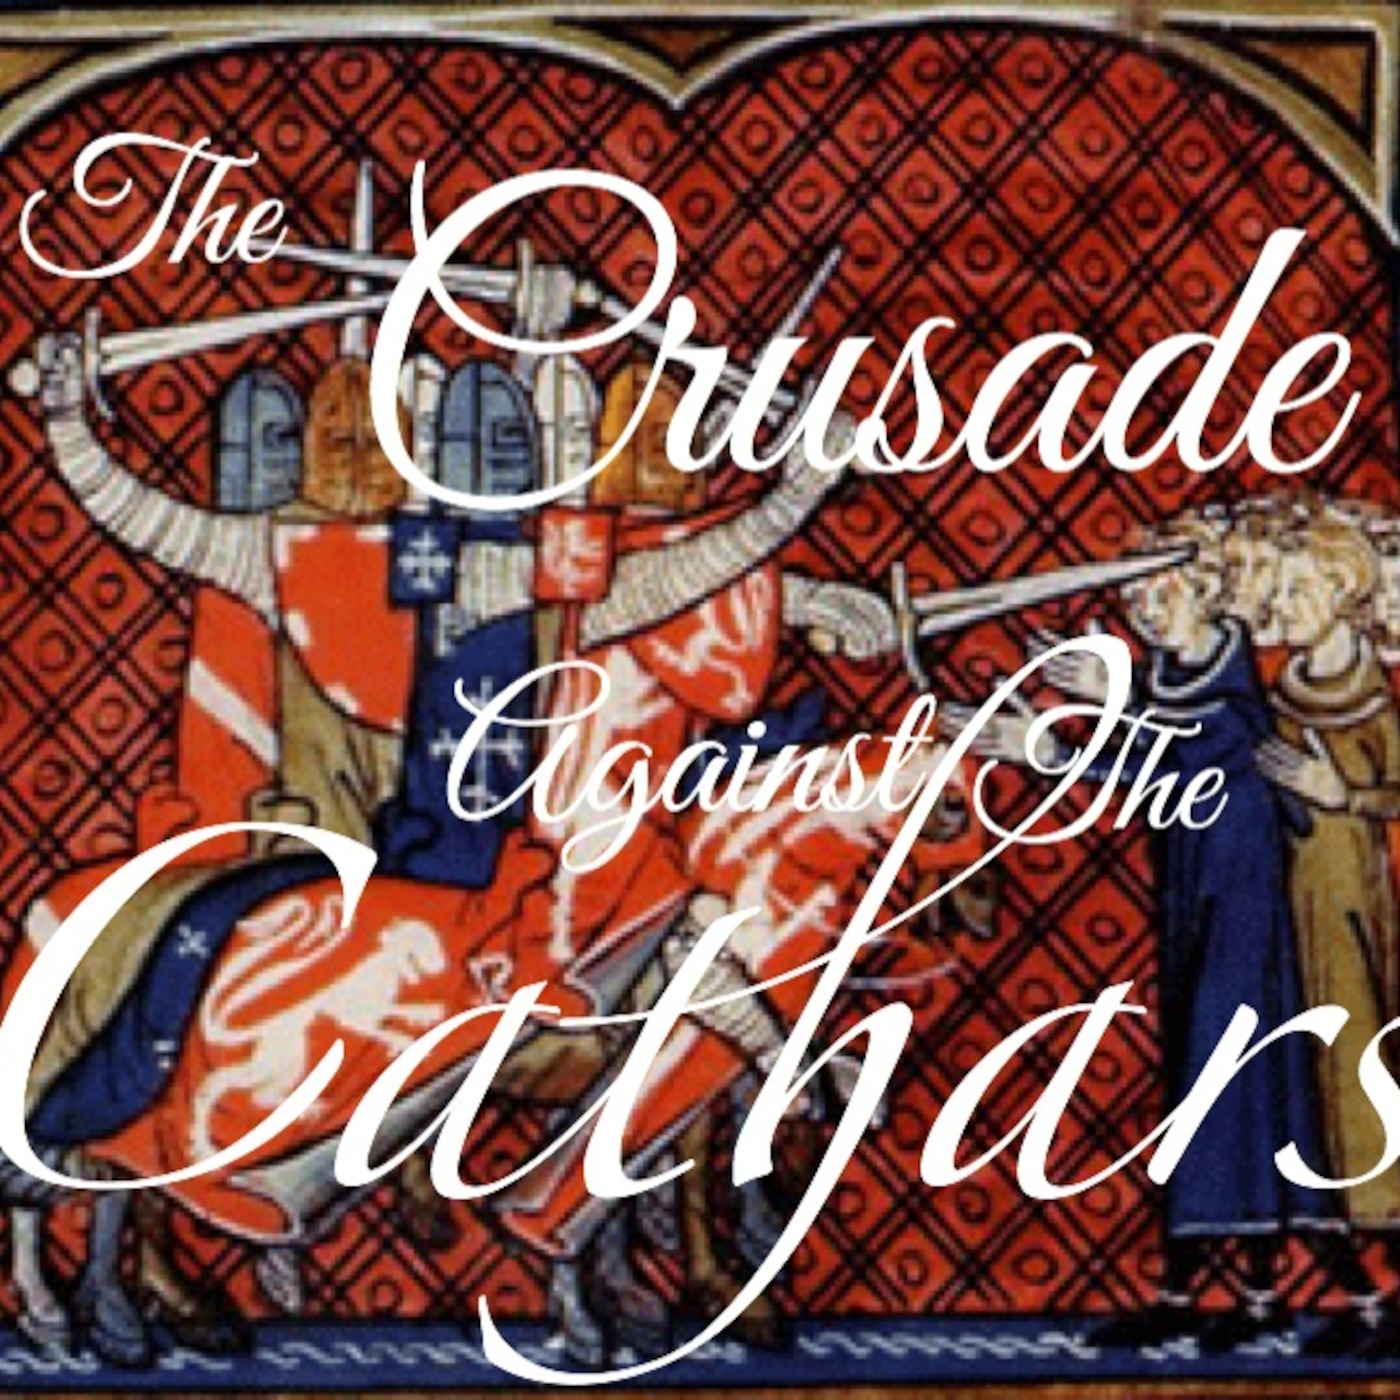 Episode 113 - The Crusade against the Cathars